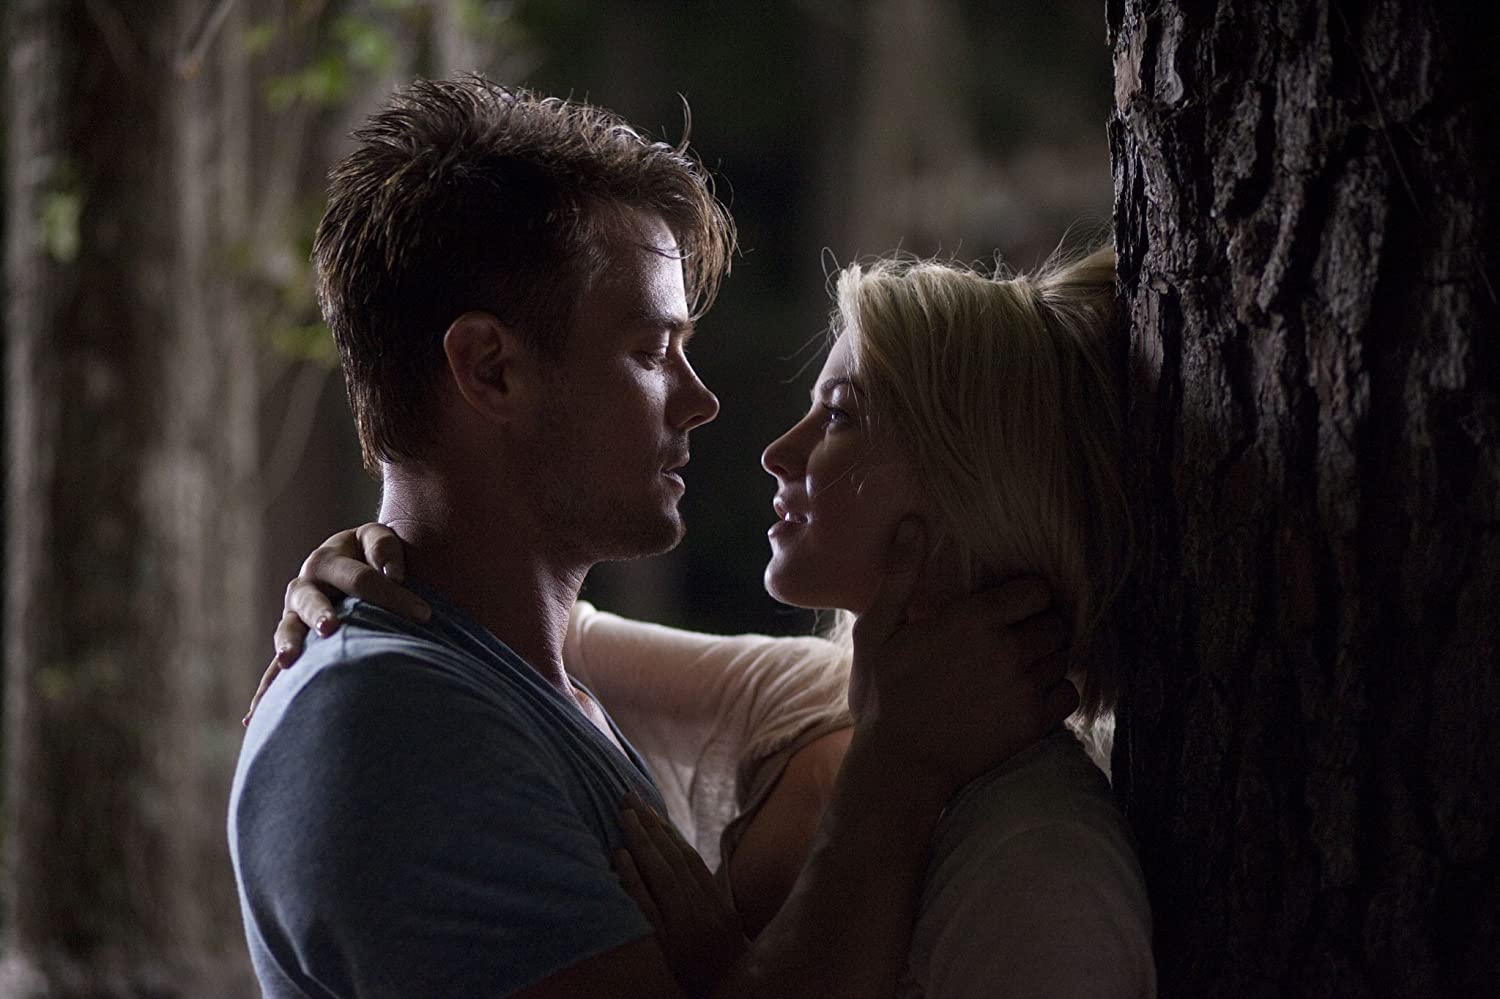 Josh Duhamel & Julianne Hough / Safe Haven / Relativity Media. © 2013. All rights reserved.